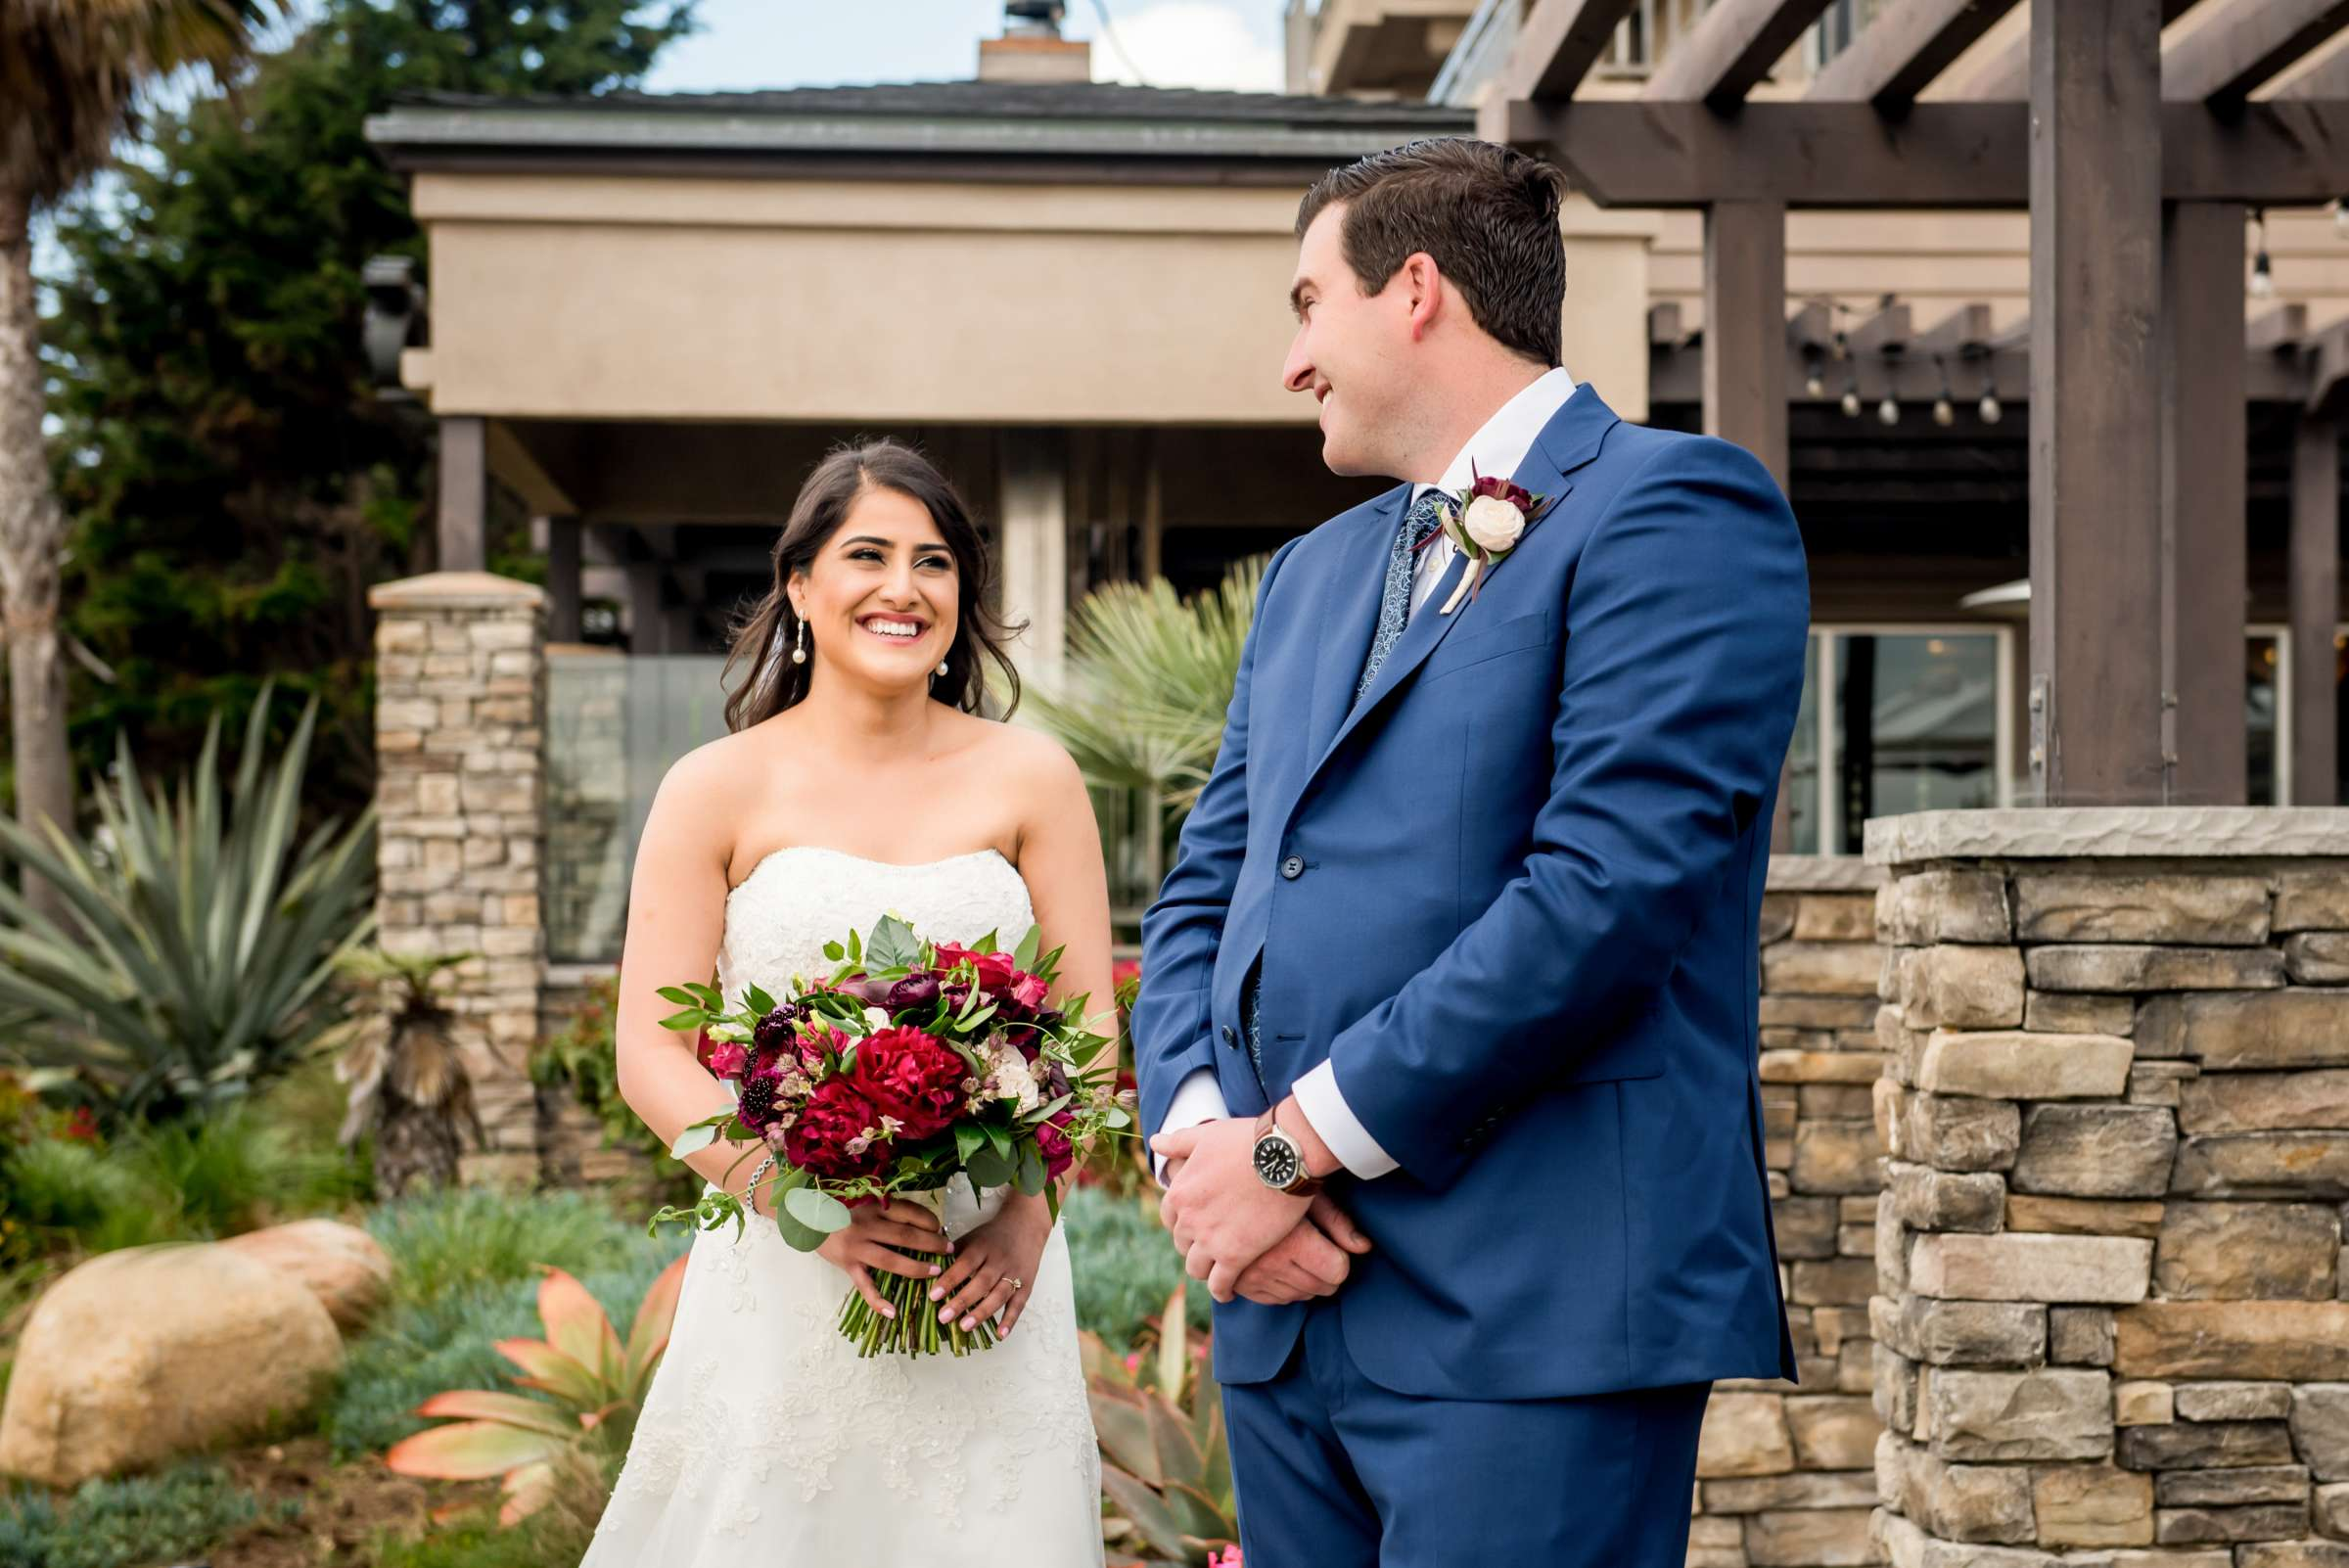 Cape Rey Carlsbad, A Hilton Resort Wedding, Jasmine and Kyle Wedding Photo #65 by True Photography